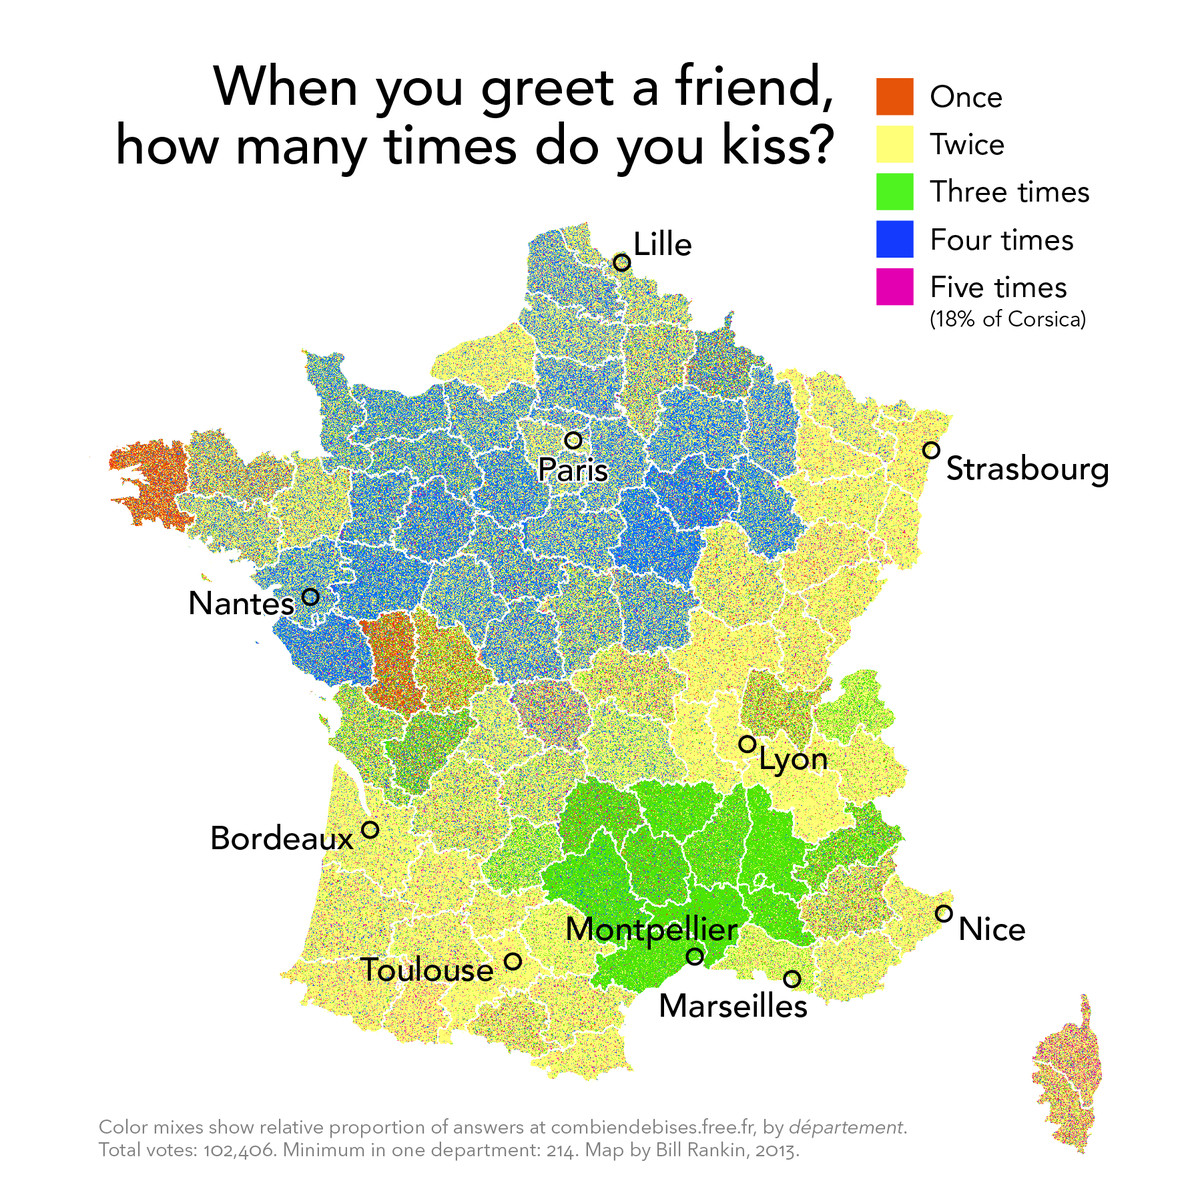 the propensity of cheek based kisses in france mapped